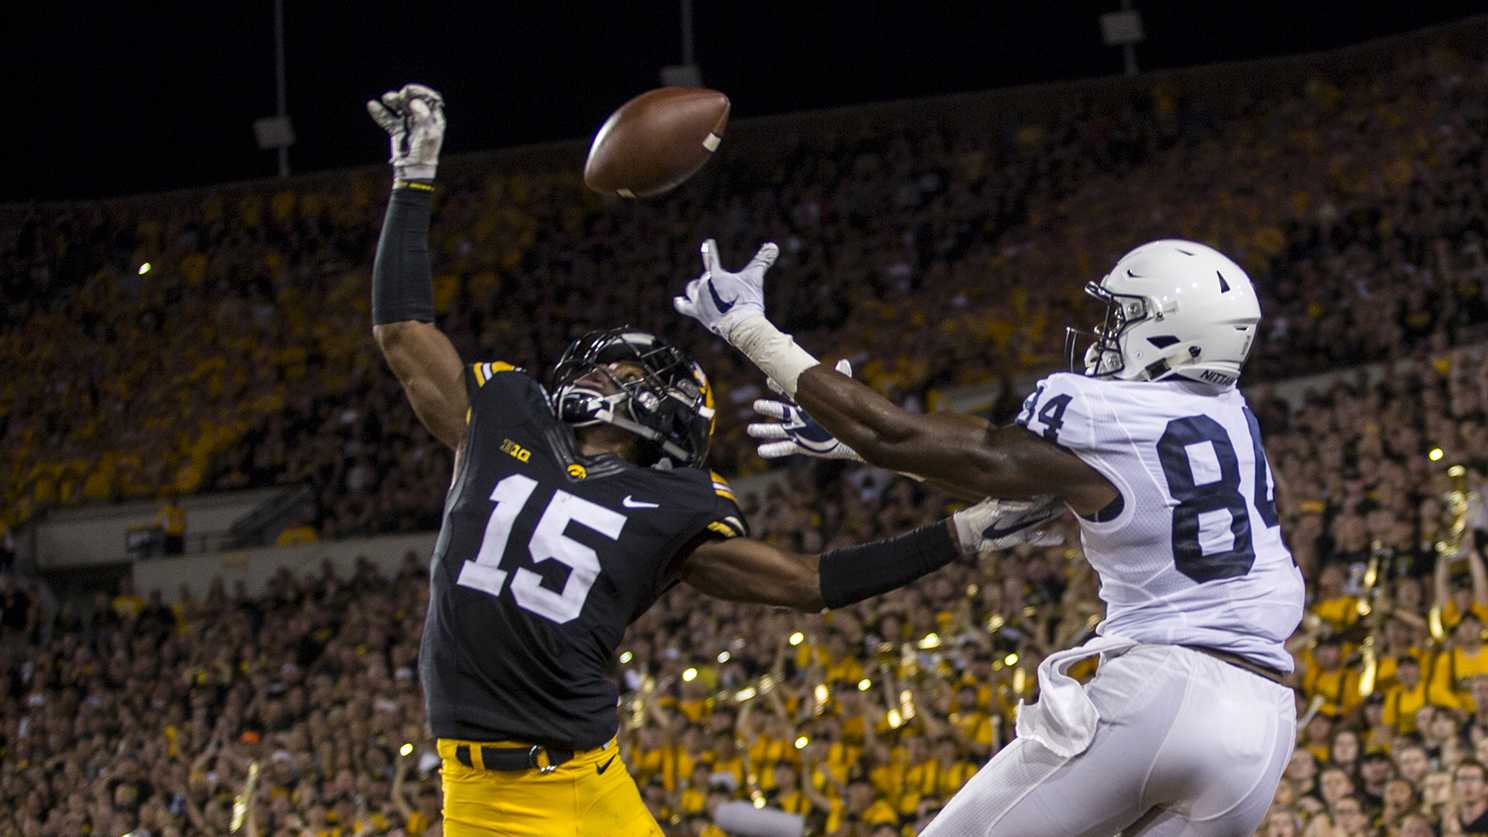 Iowa defensive back Josh Jackson breaks up a pass attempt in the end zone during Iowa's game against Penn State at Kinnick Stadium on Sept. 23, 2017. Penn State defeated Iowa 21-19 on a last second touchdown pass. (Nick Rohlman/The Daily Iowan)